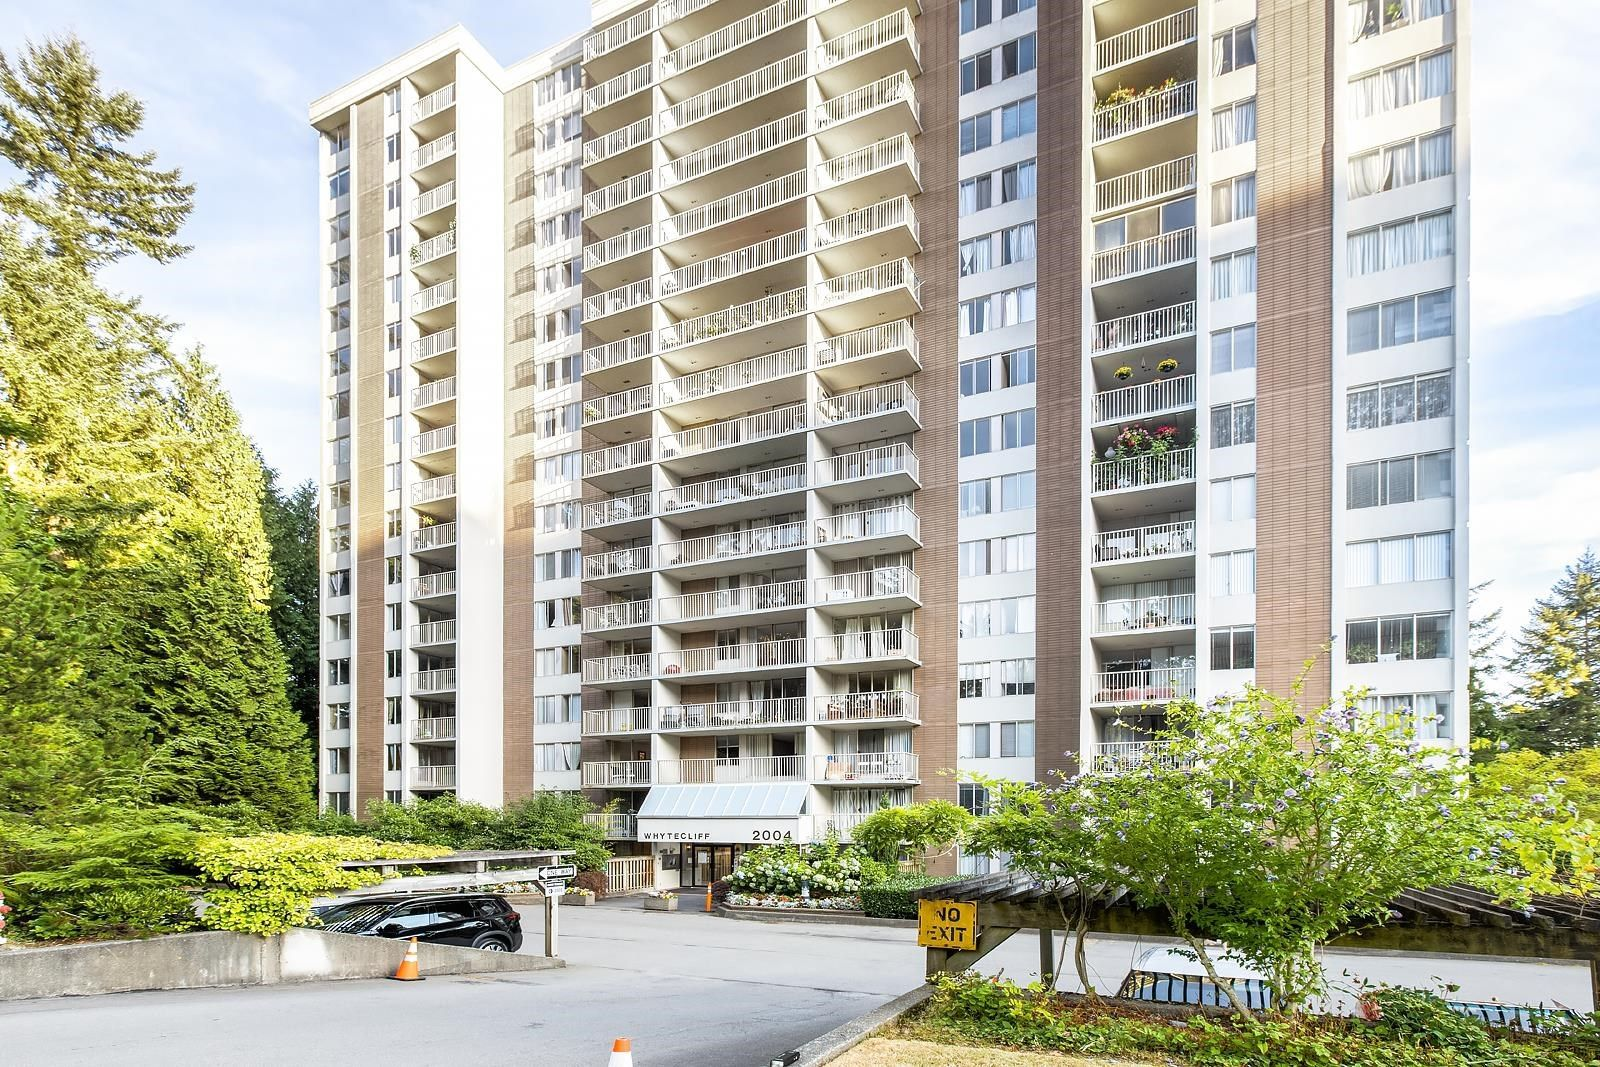 """Main Photo: 503 2004 FULLERTON Avenue in North Vancouver: Pemberton NV Condo for sale in """"Woodcroft"""" : MLS®# R2609734"""